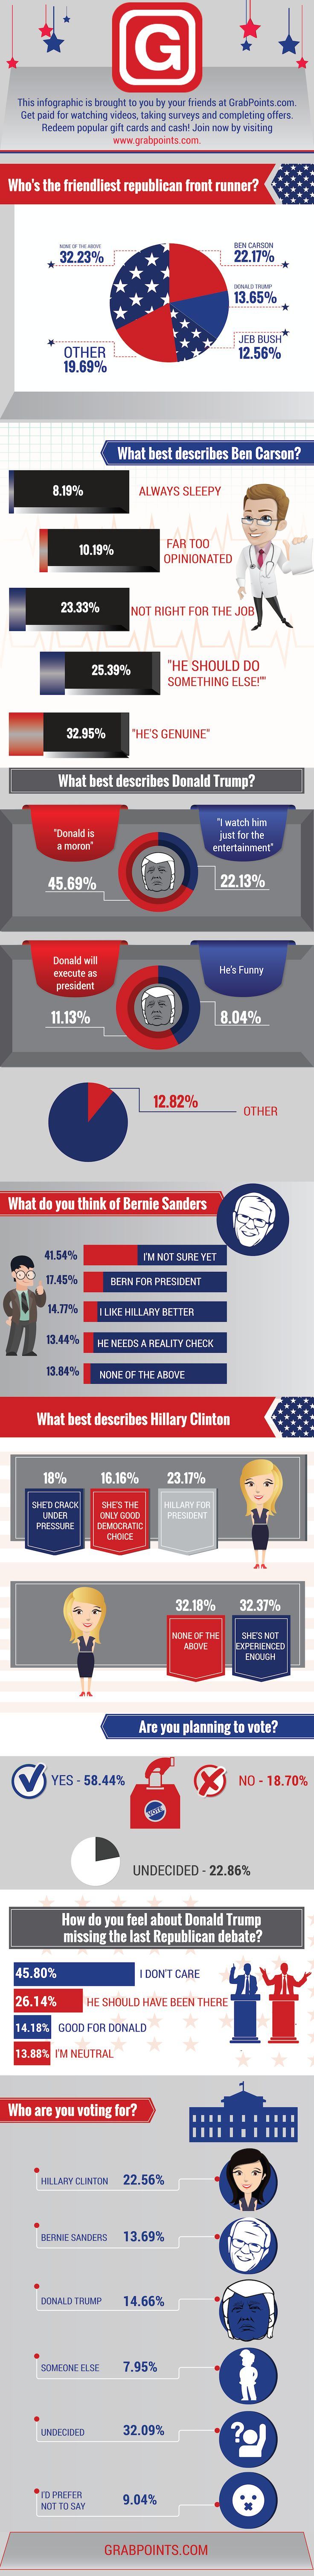 """GrabPoints.com recently asked their members various questions about presidential candidates in the upcoming 2016 election. Many conclusions can be extrapolated from the results, and the following infographic includes all the highlights. A few key points:  Bernie Sanders has many undecided voters. Things go either way for the Bern! In general, respondents dislike Republicans. 32% chose """"None of the Above"""" when we asked who's the friendliest republican front runner 32.27% of respondents think…"""